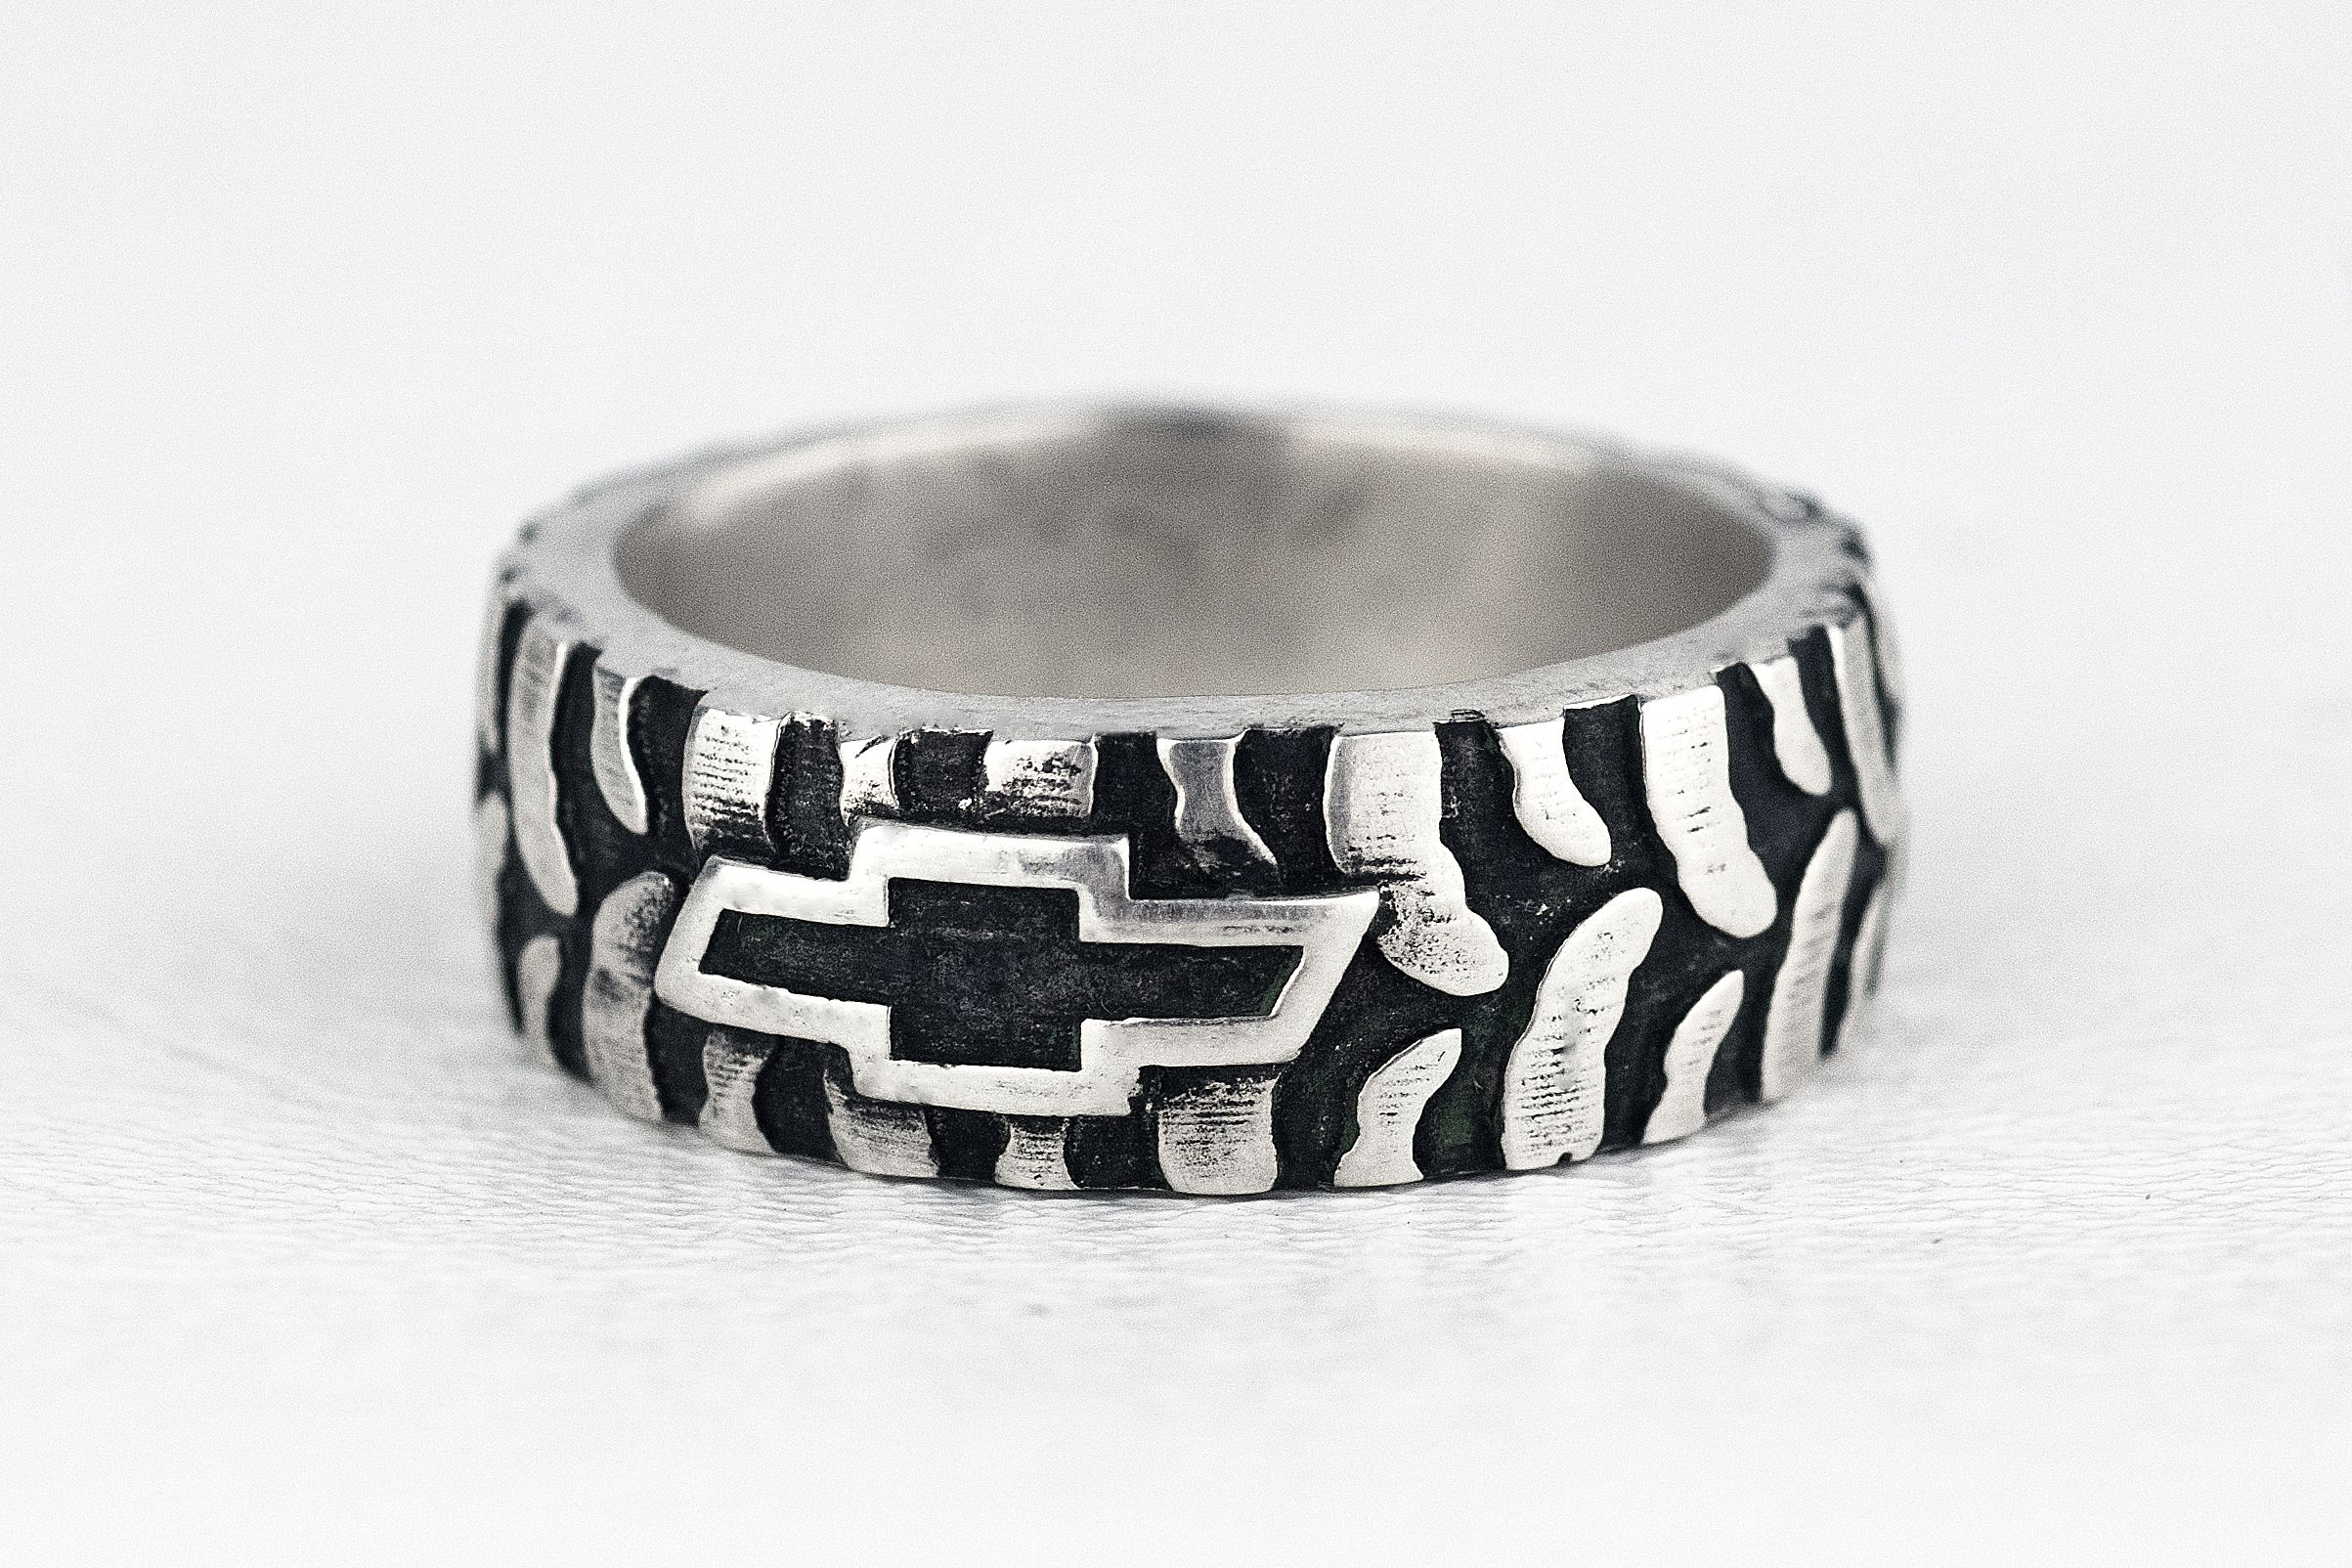 Buy A Hand Made Car Truck Mud Bogger Mens Tire Tread Ring Made To Order From Rock My World